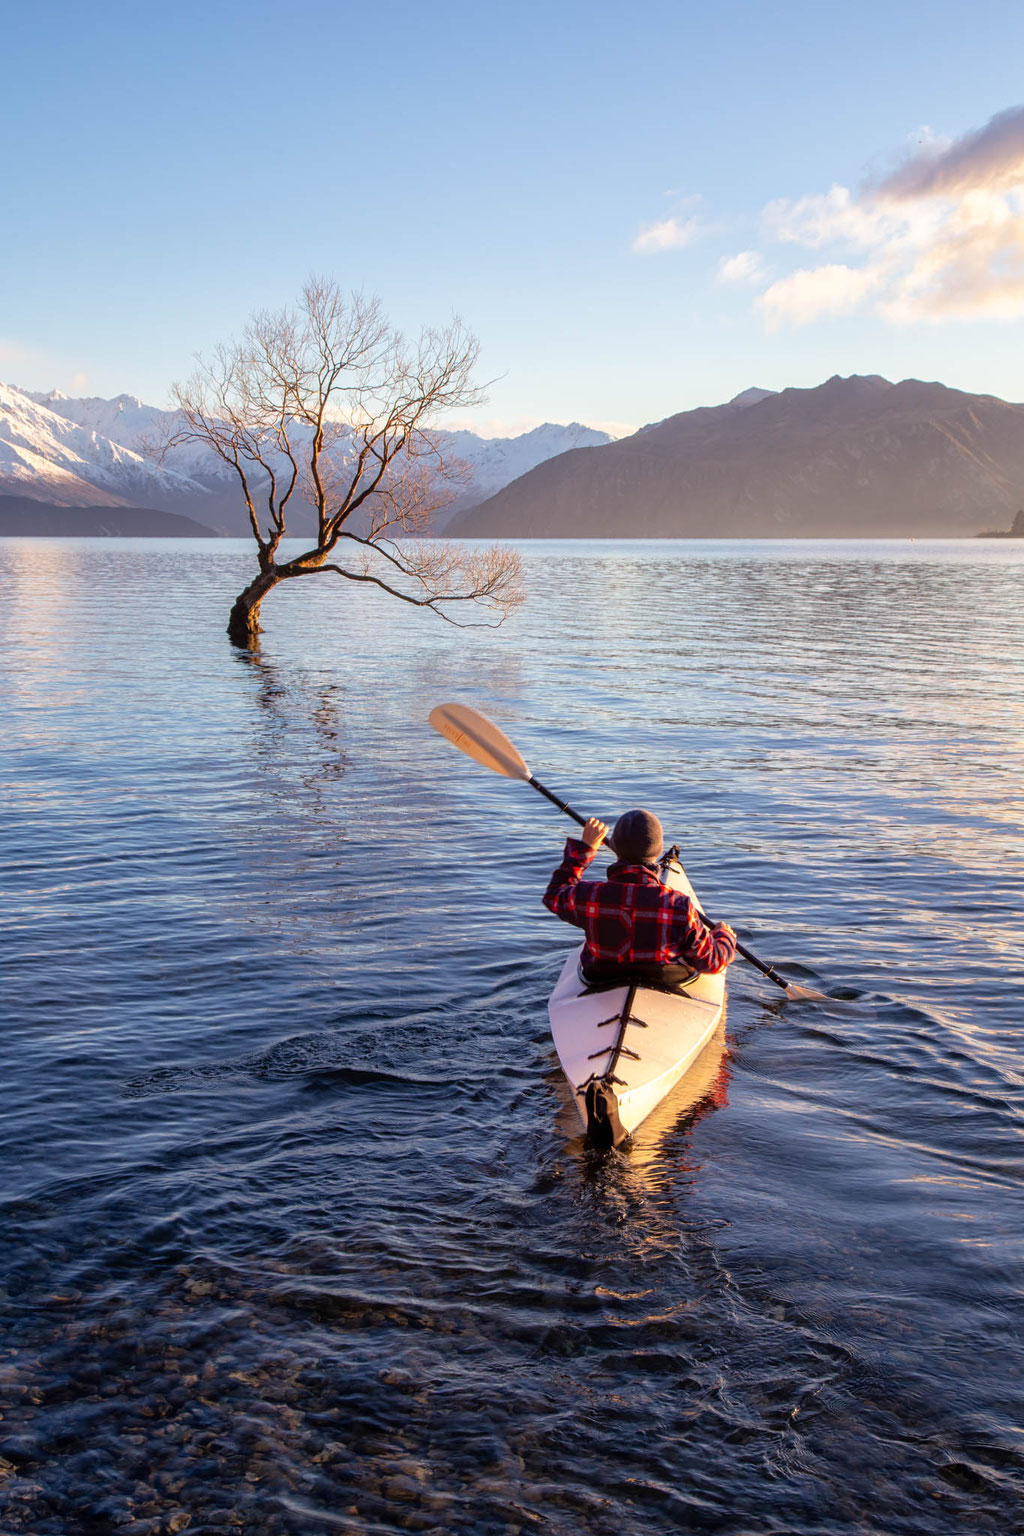 A friend of mine kayaking on the Wanaka lake